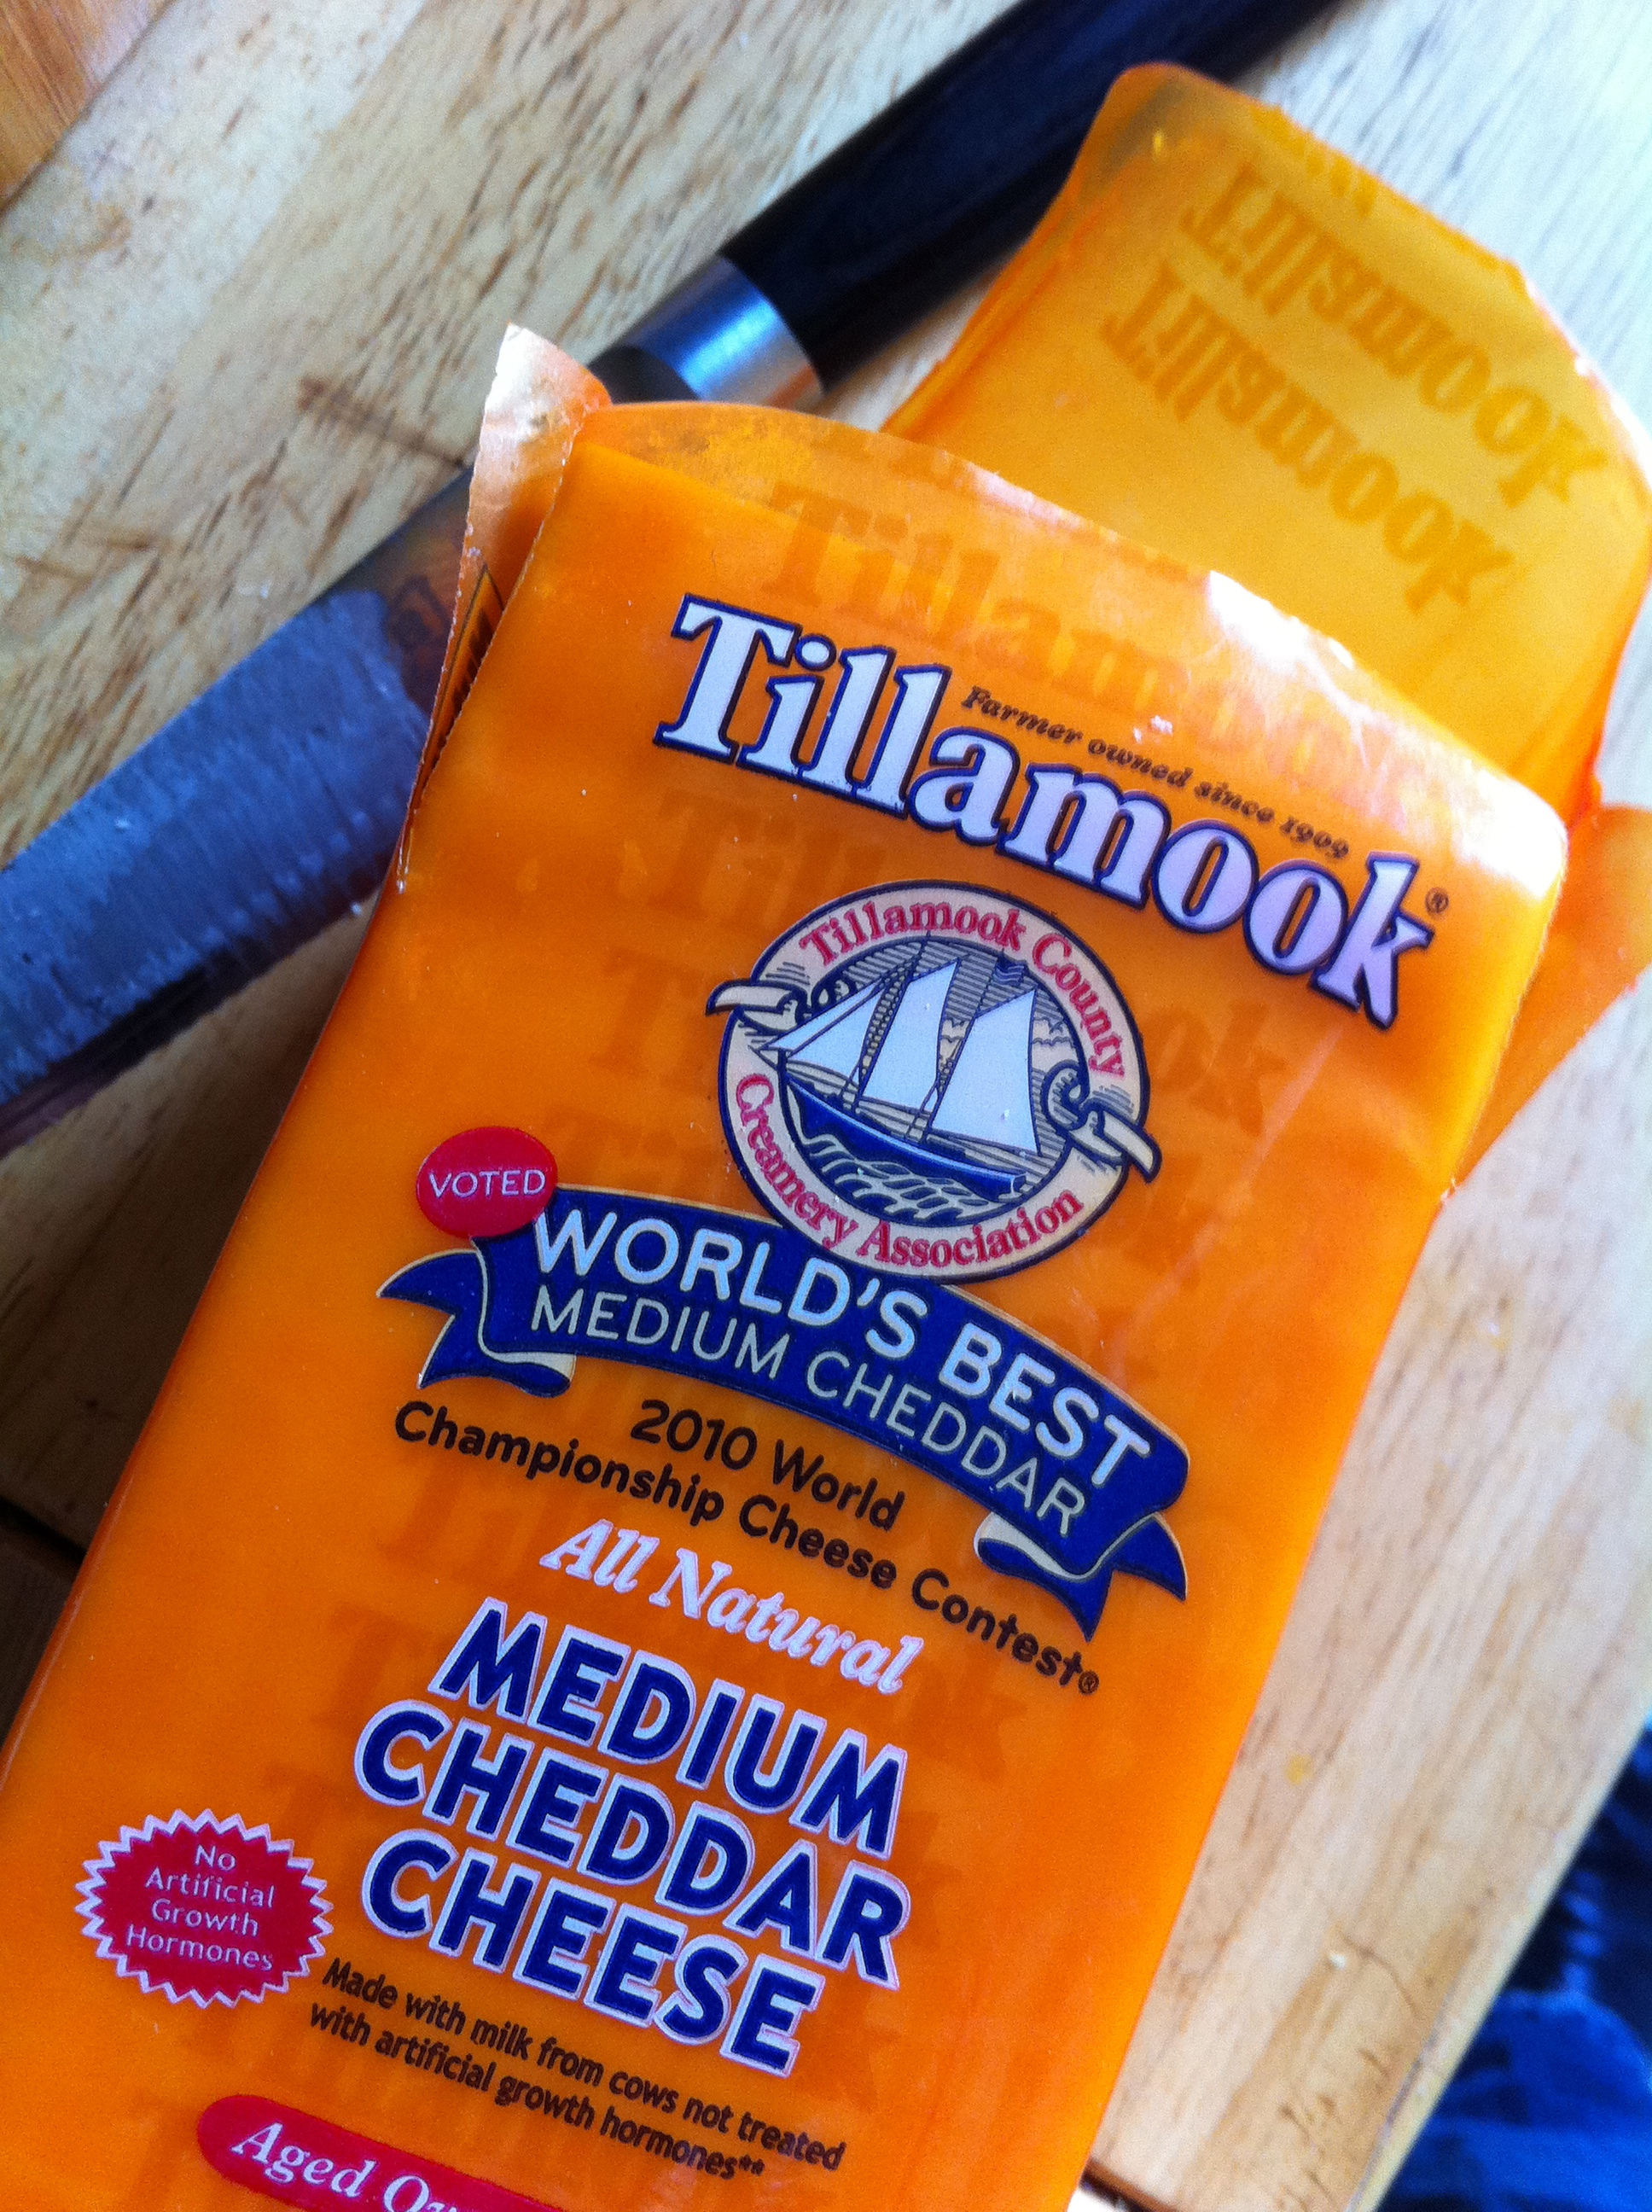 Tillamook: the world's best cheddar